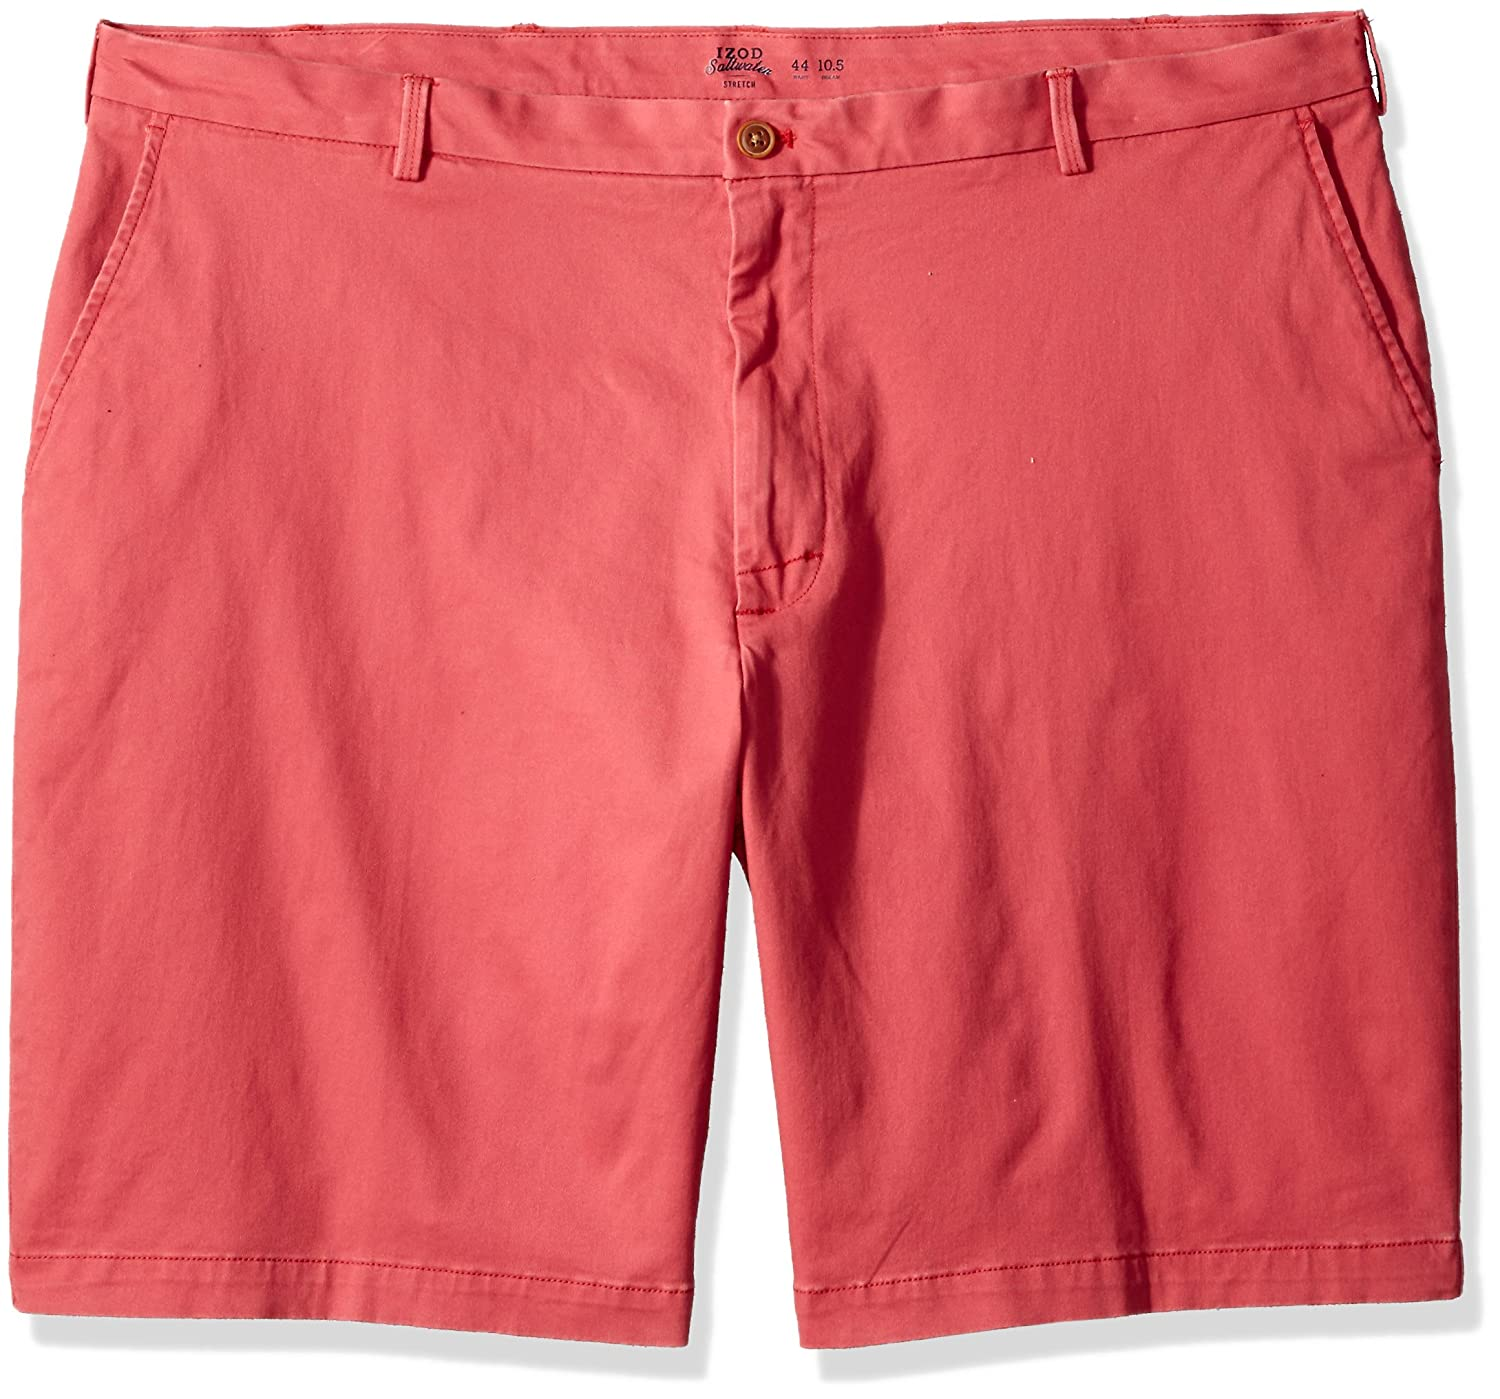 IZOD Men's Big and Tall Flat Front Short 45X5134